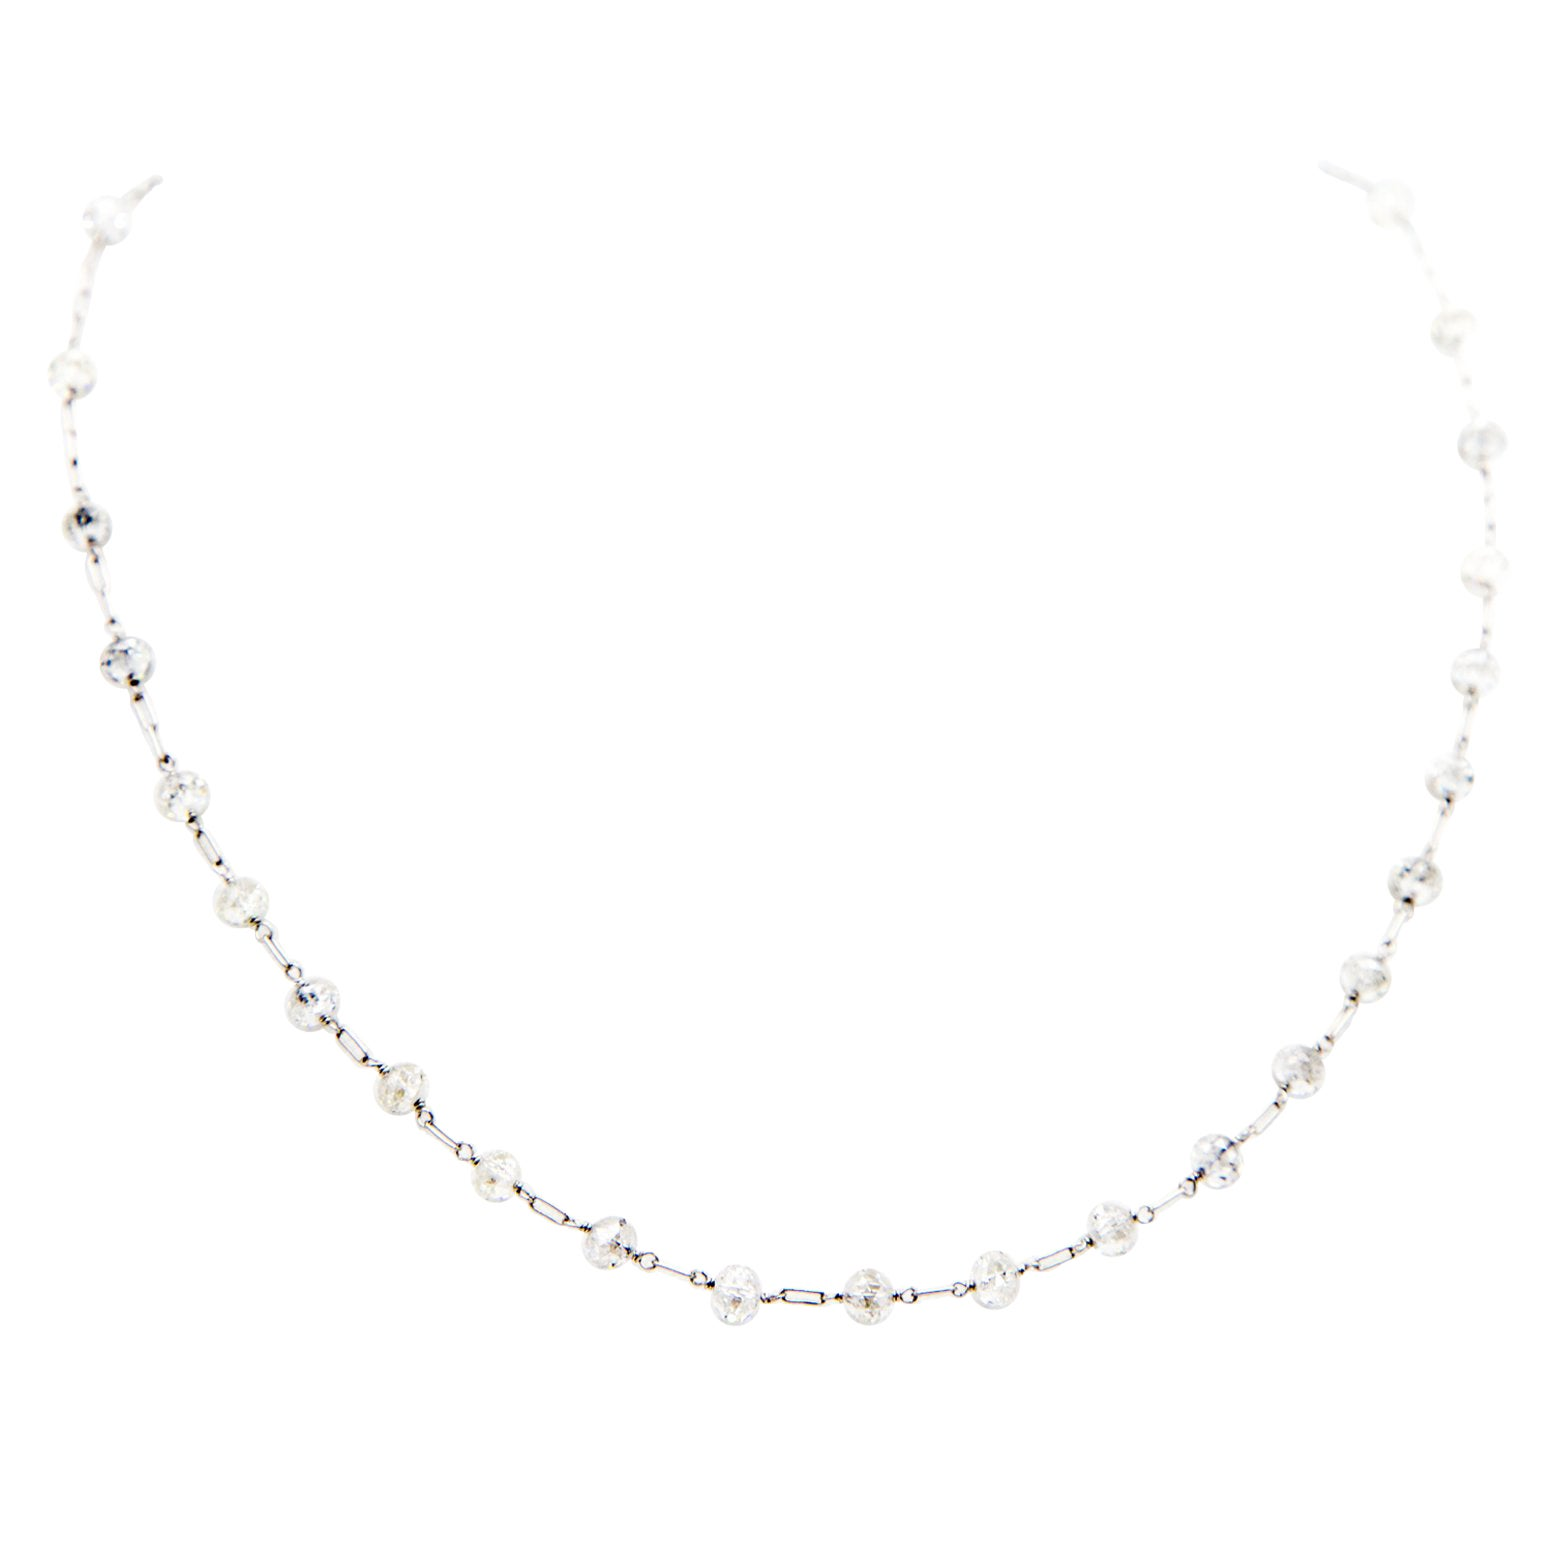 35 Carats Diamond Beads Facetted Platinum Chain Necklace